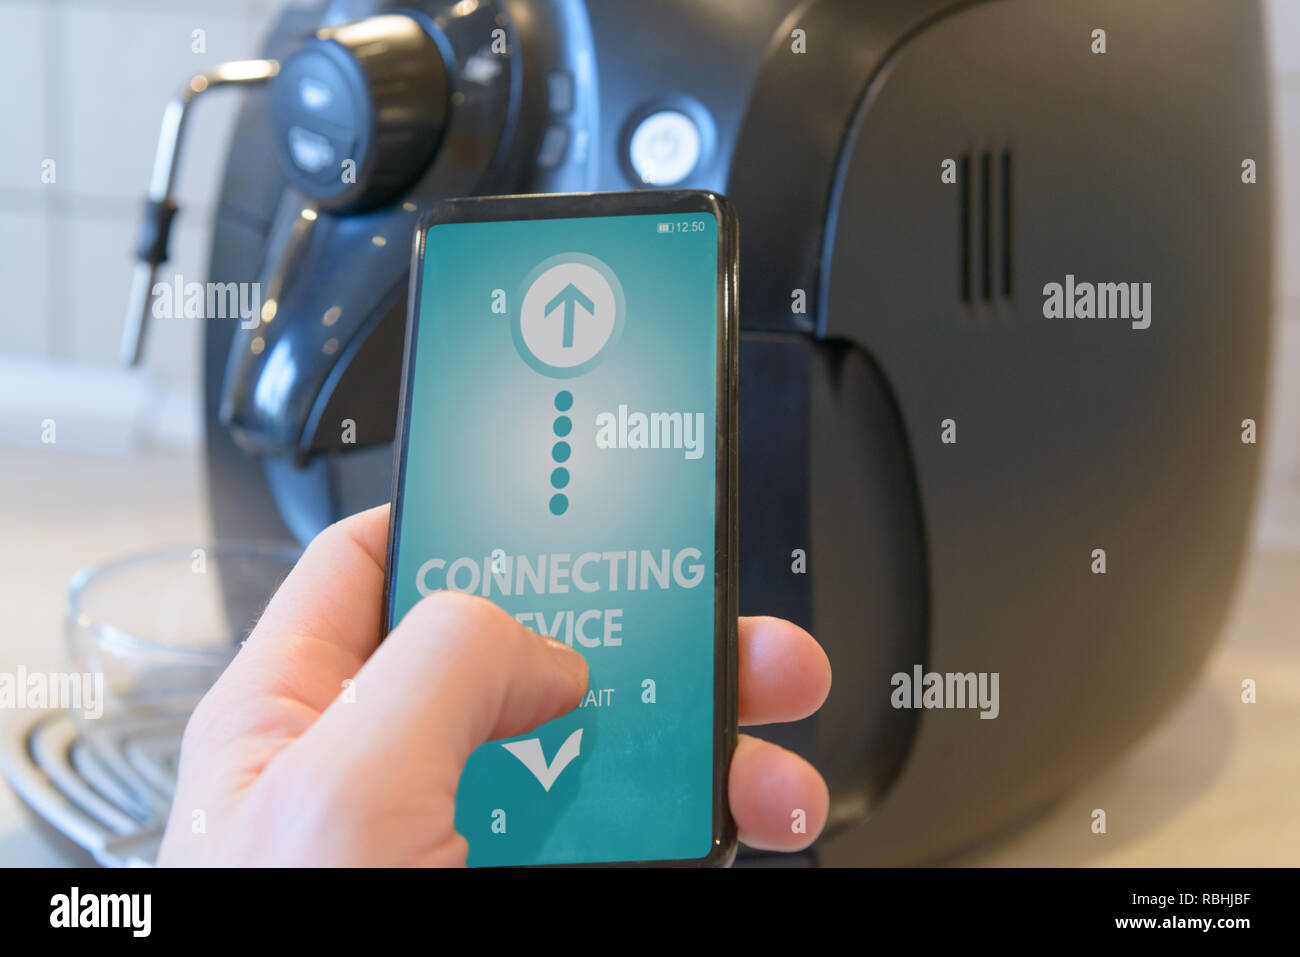 Connecting coffee machine with smart phone. Smart home and Internet of Things IoT concept - Stock Image